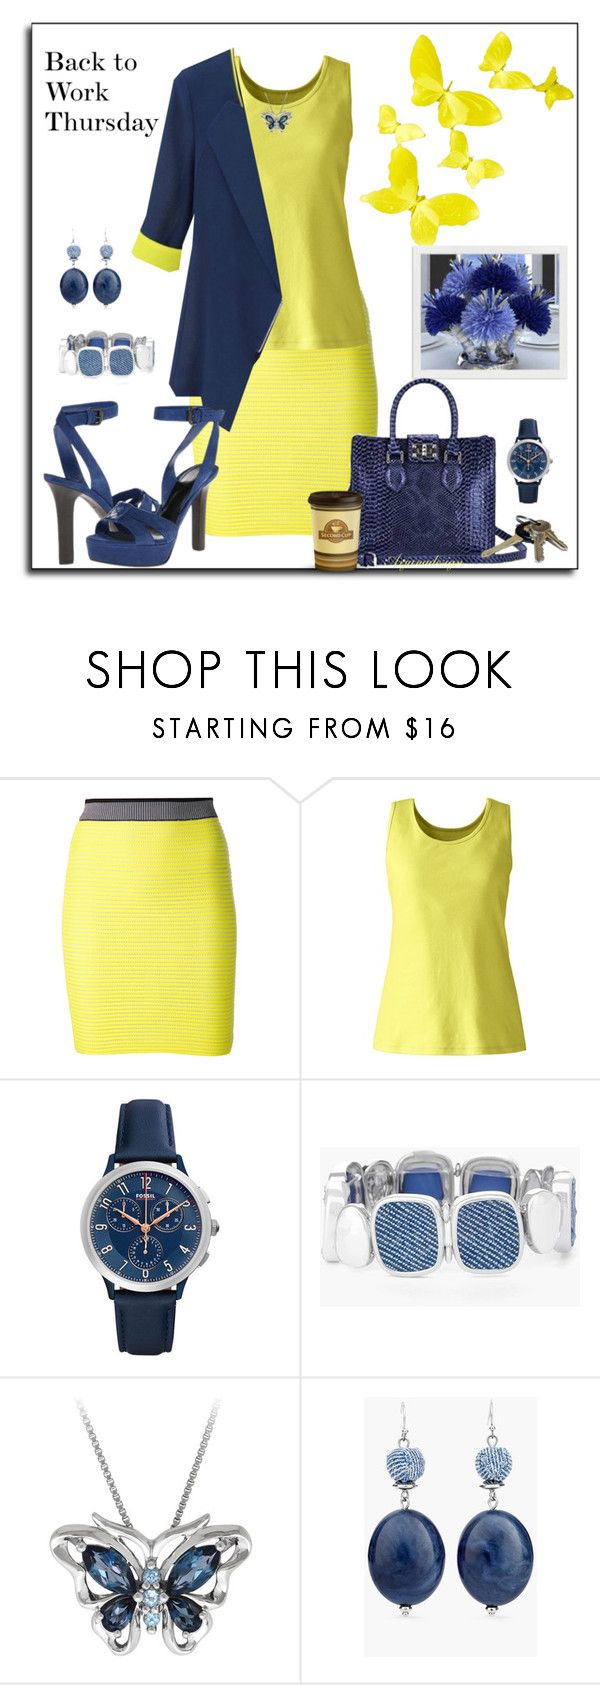 """""""BACK TO WORK THURSDAY"""" by arjanadesign ❤ liked on Polyvore featuring Alexander Wang, Lands' End, FOSSIL, Chico's, Avon, AlexanderWang, bottegaveneta, landsend and chicos"""